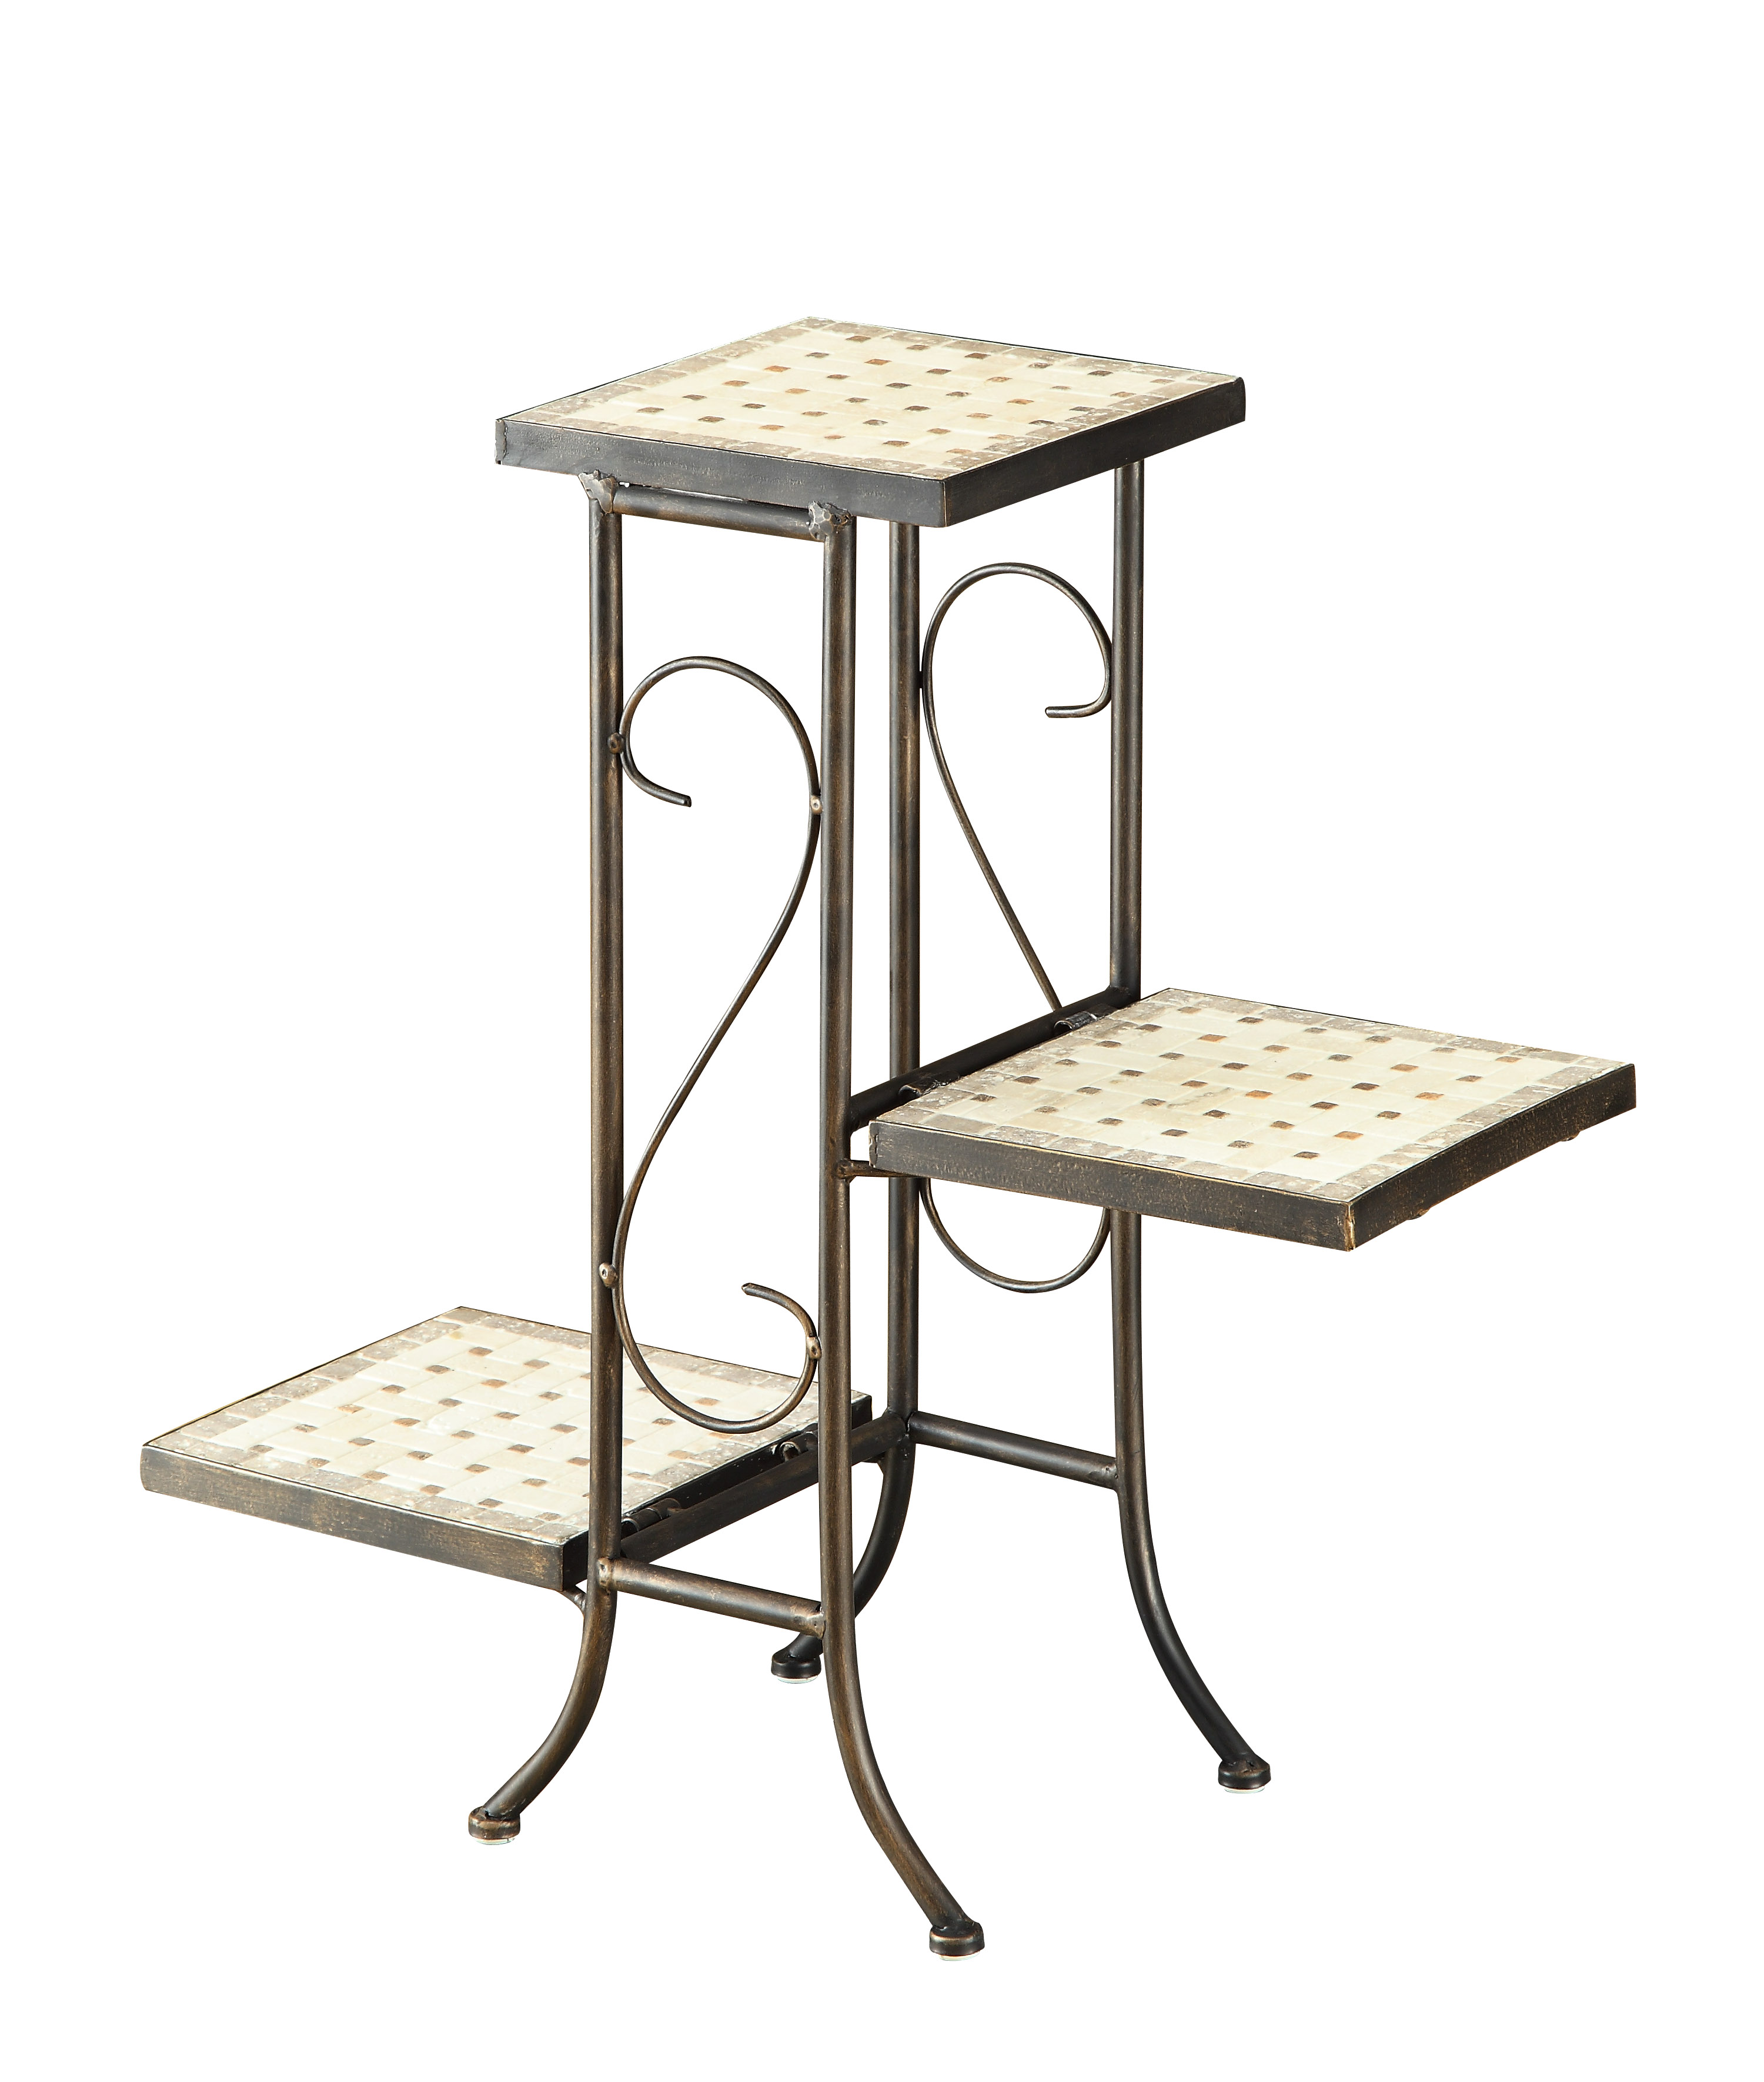 3 tier plant stand w travertine top